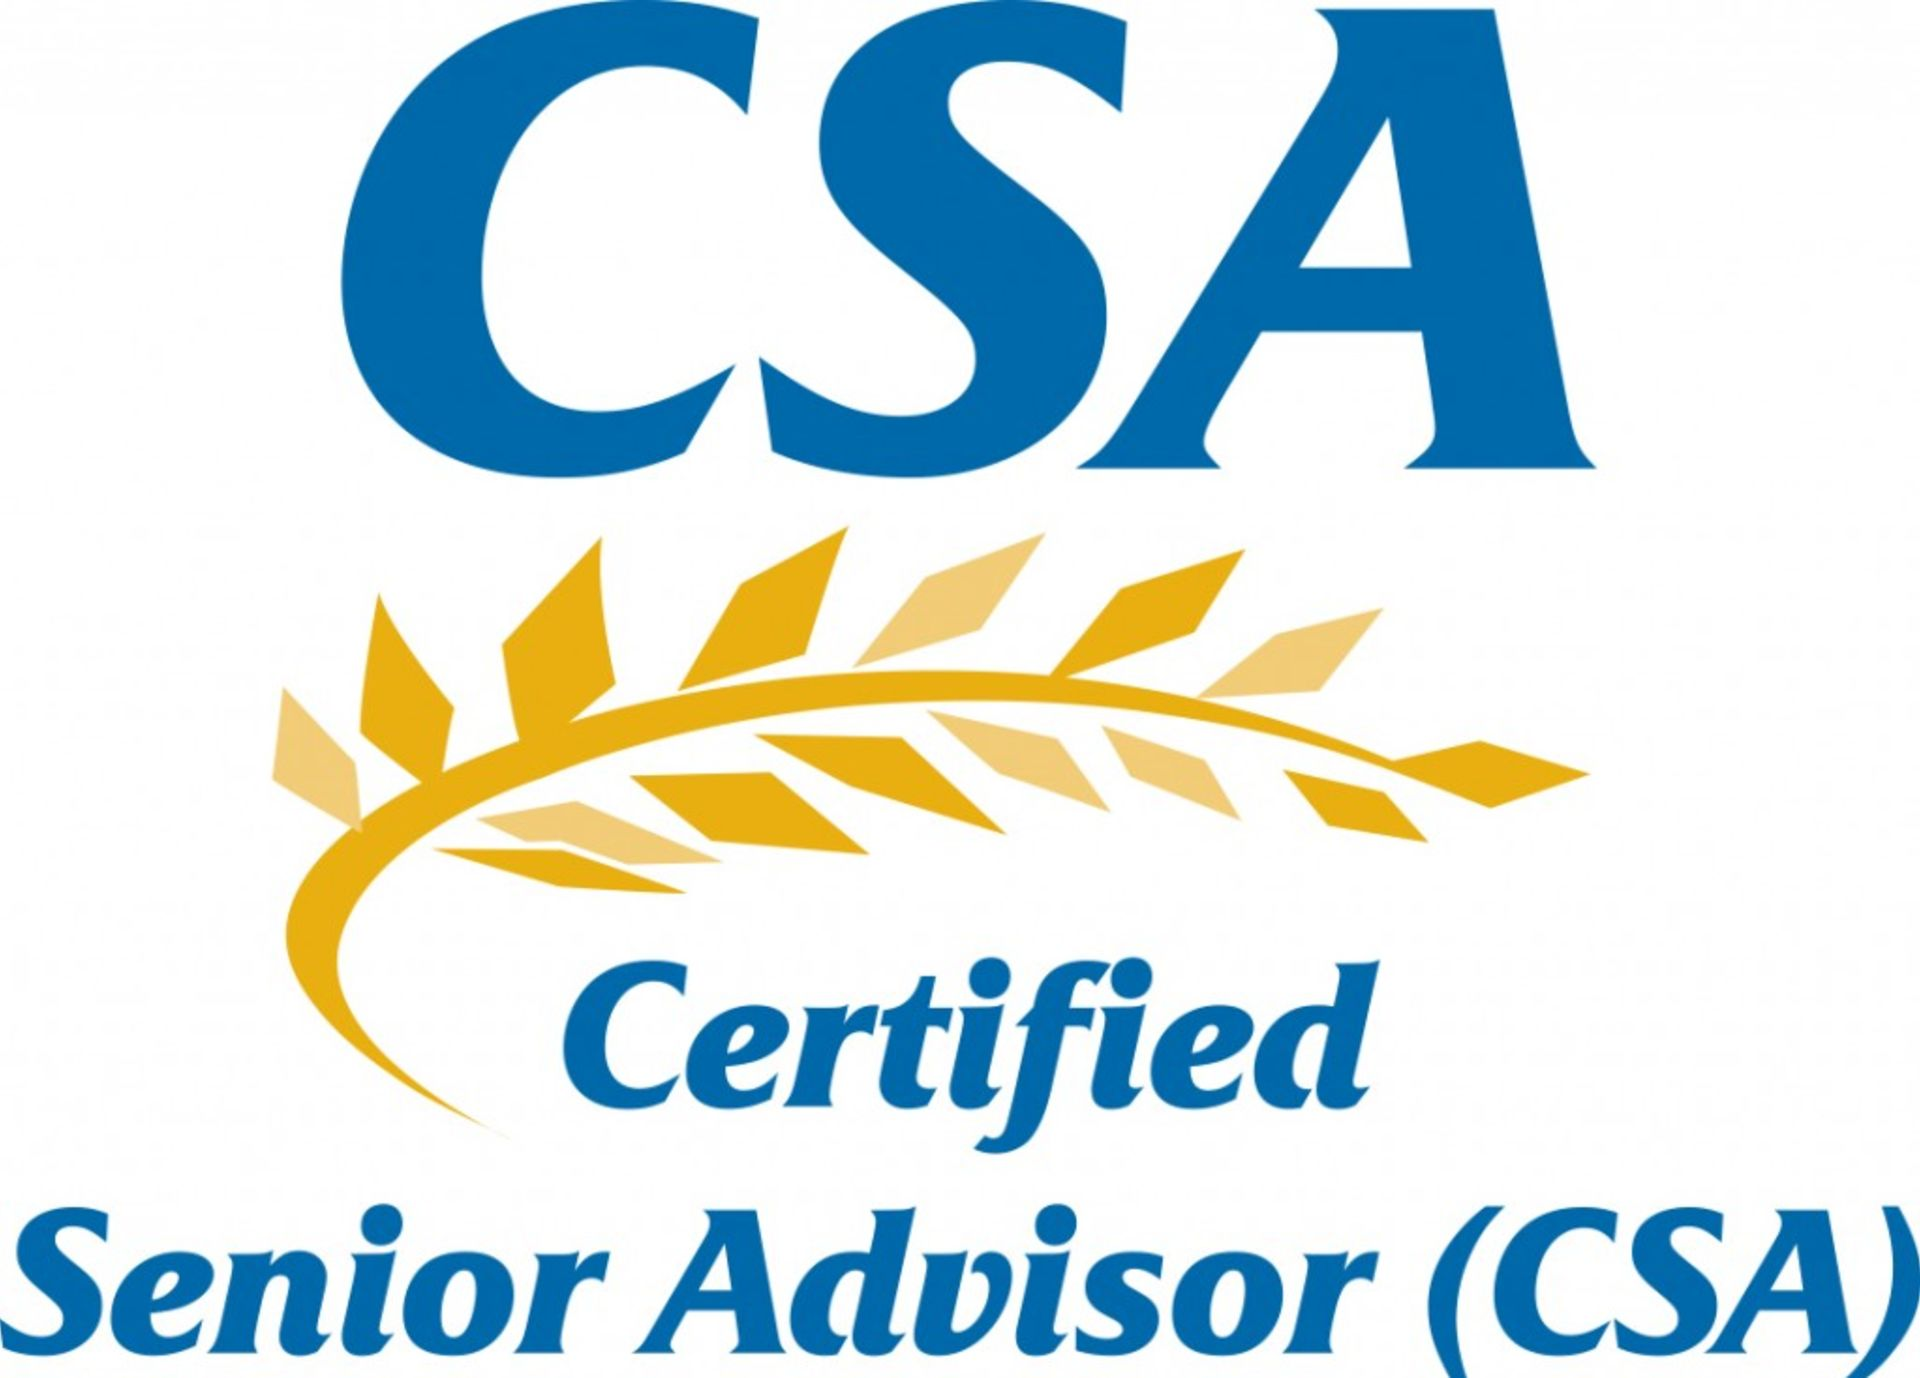 The Society of Certified Senior Advisors